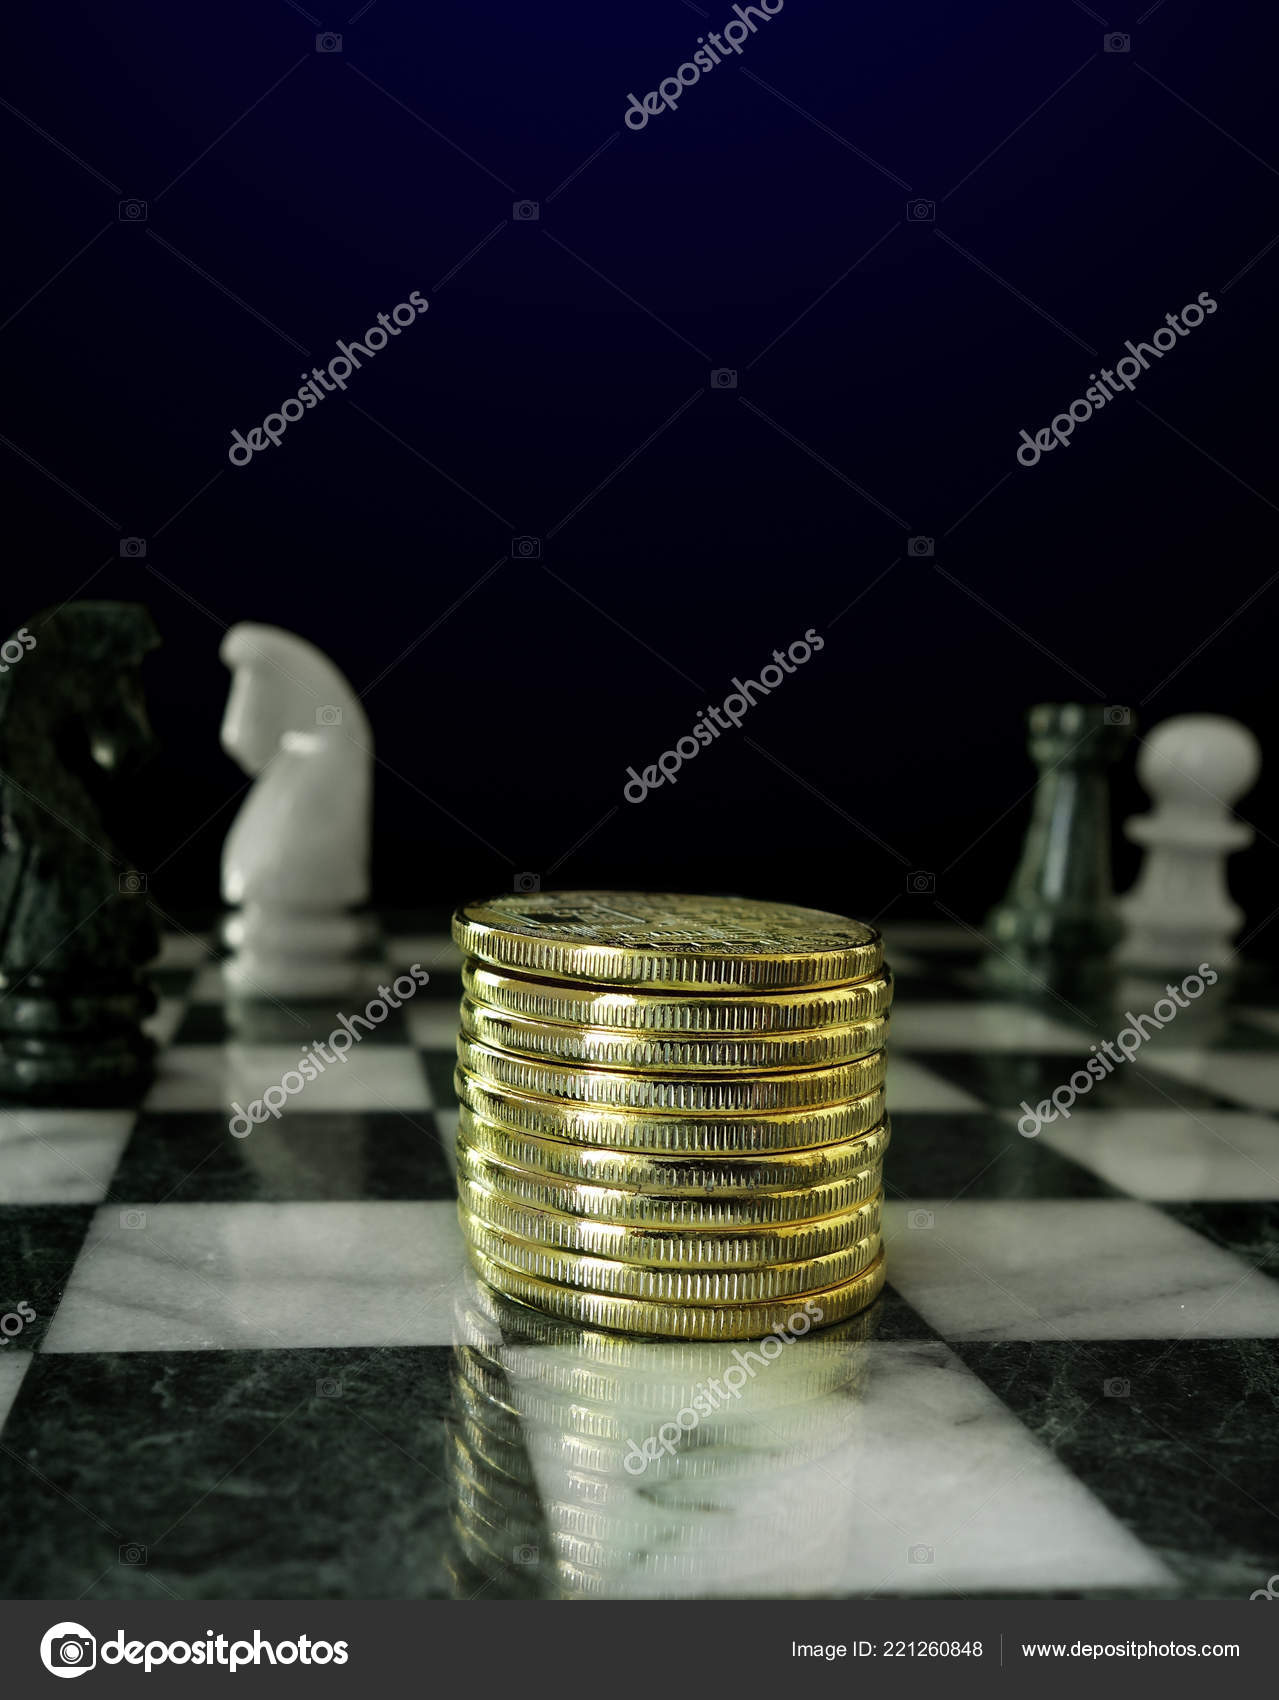 Gold Coins Stacked Chess Board Stock Photo C Zimmytws 221260848